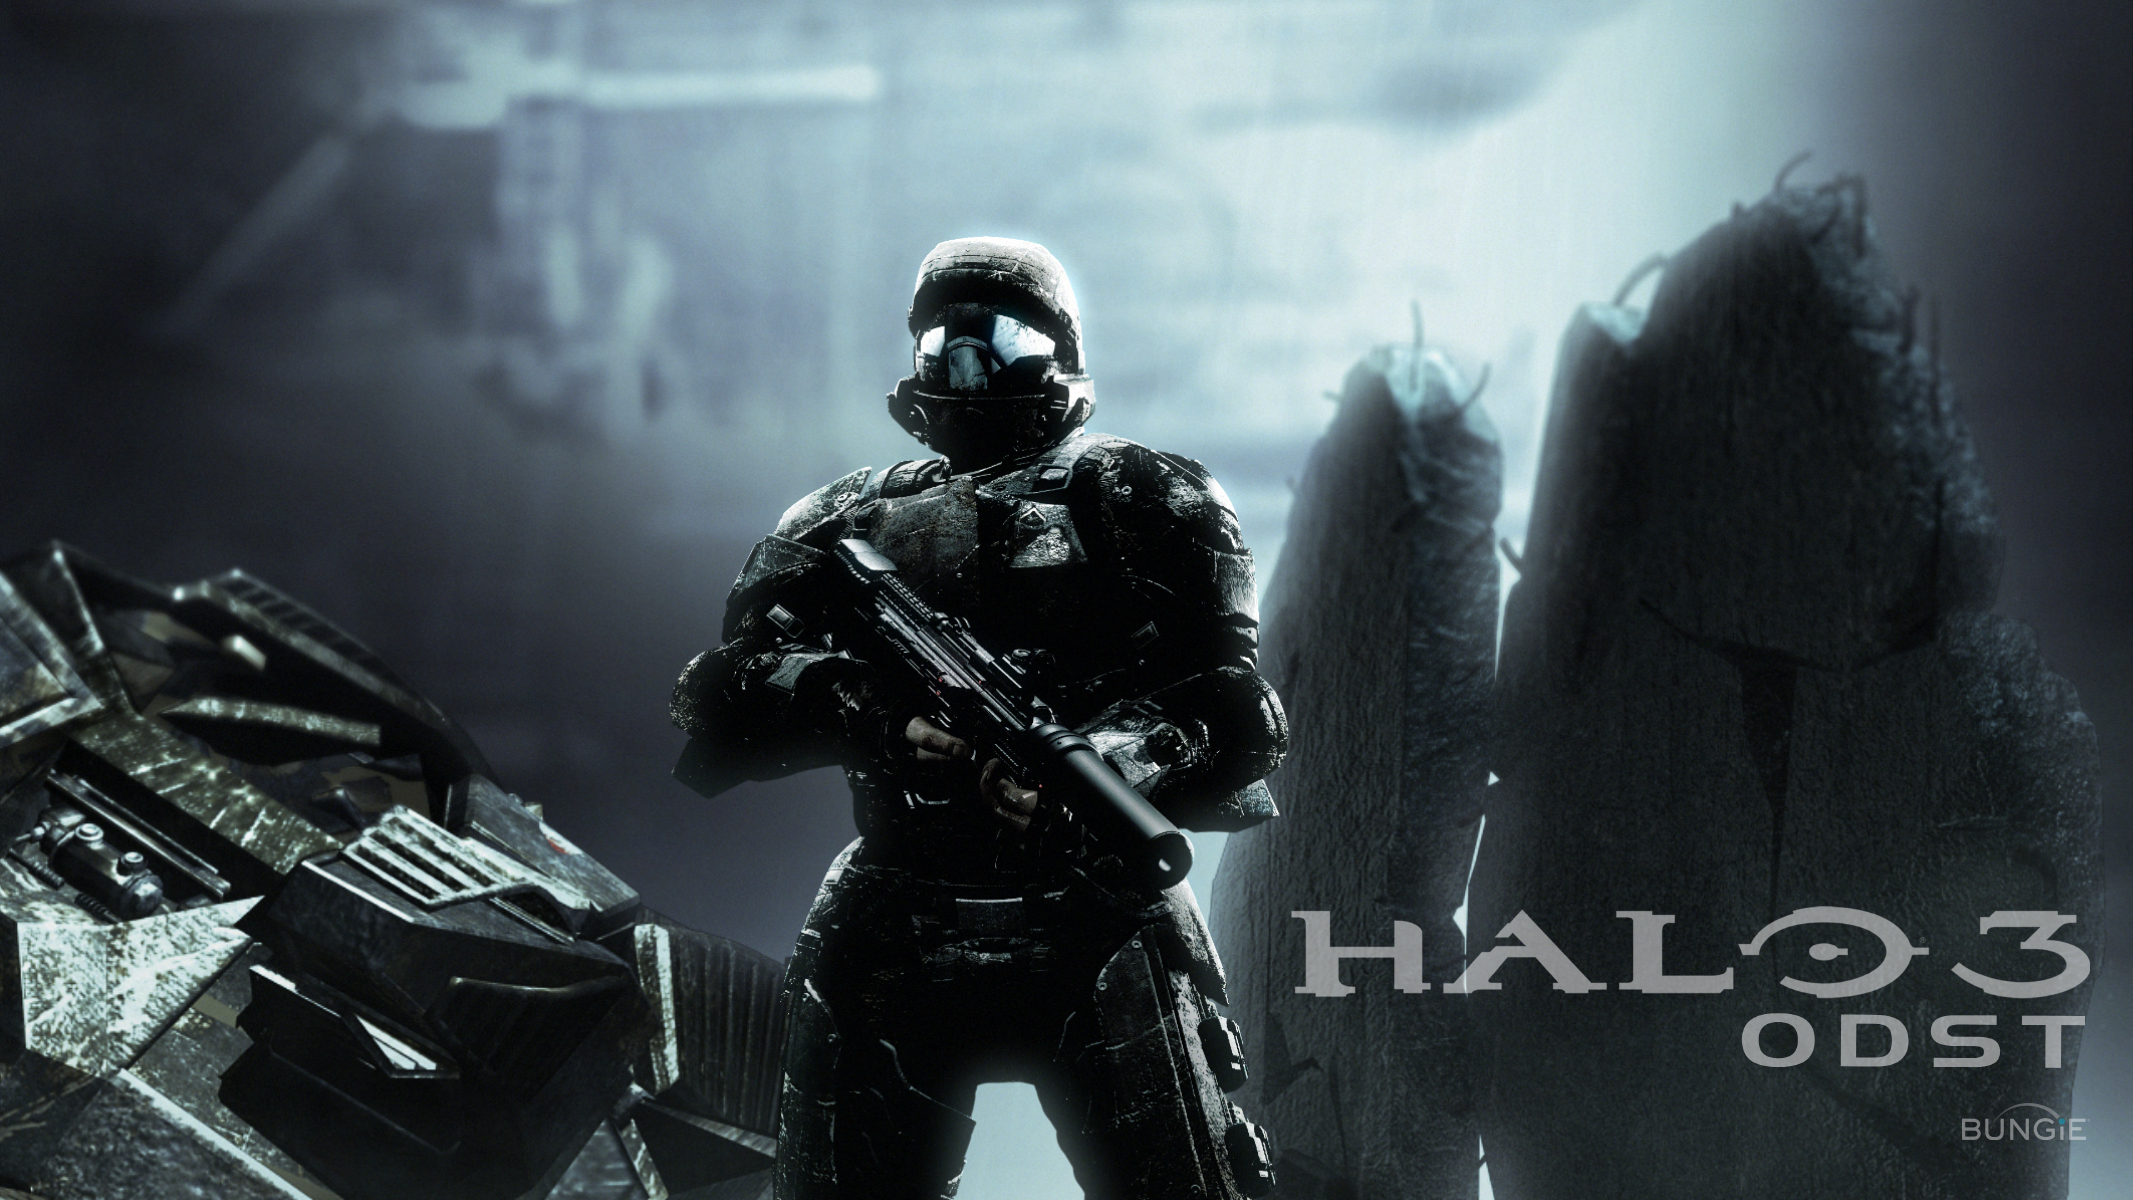 Release date for halo 3 odst mcc announced - Halo odst images ...